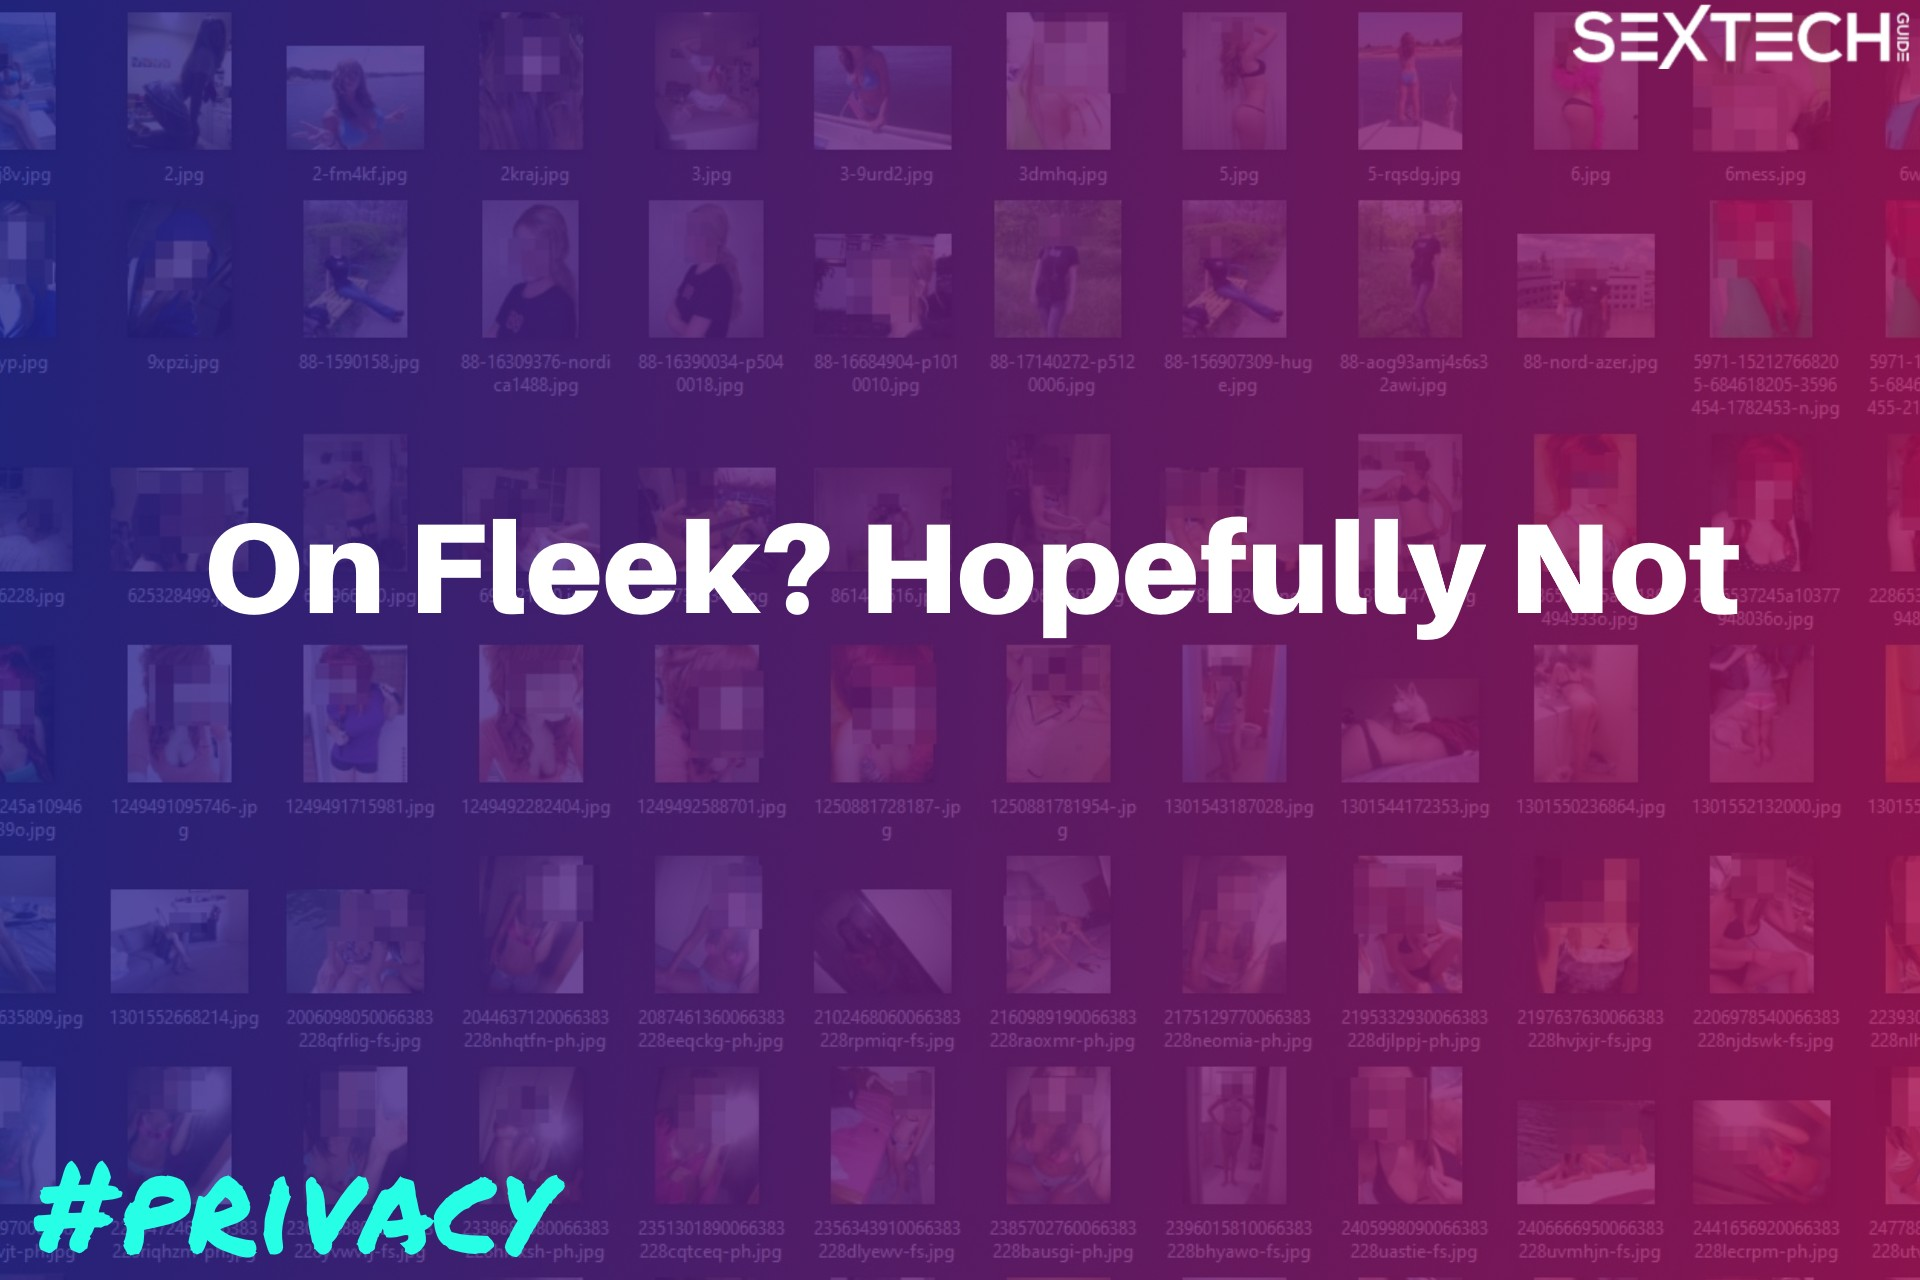 Fleek user images leaked